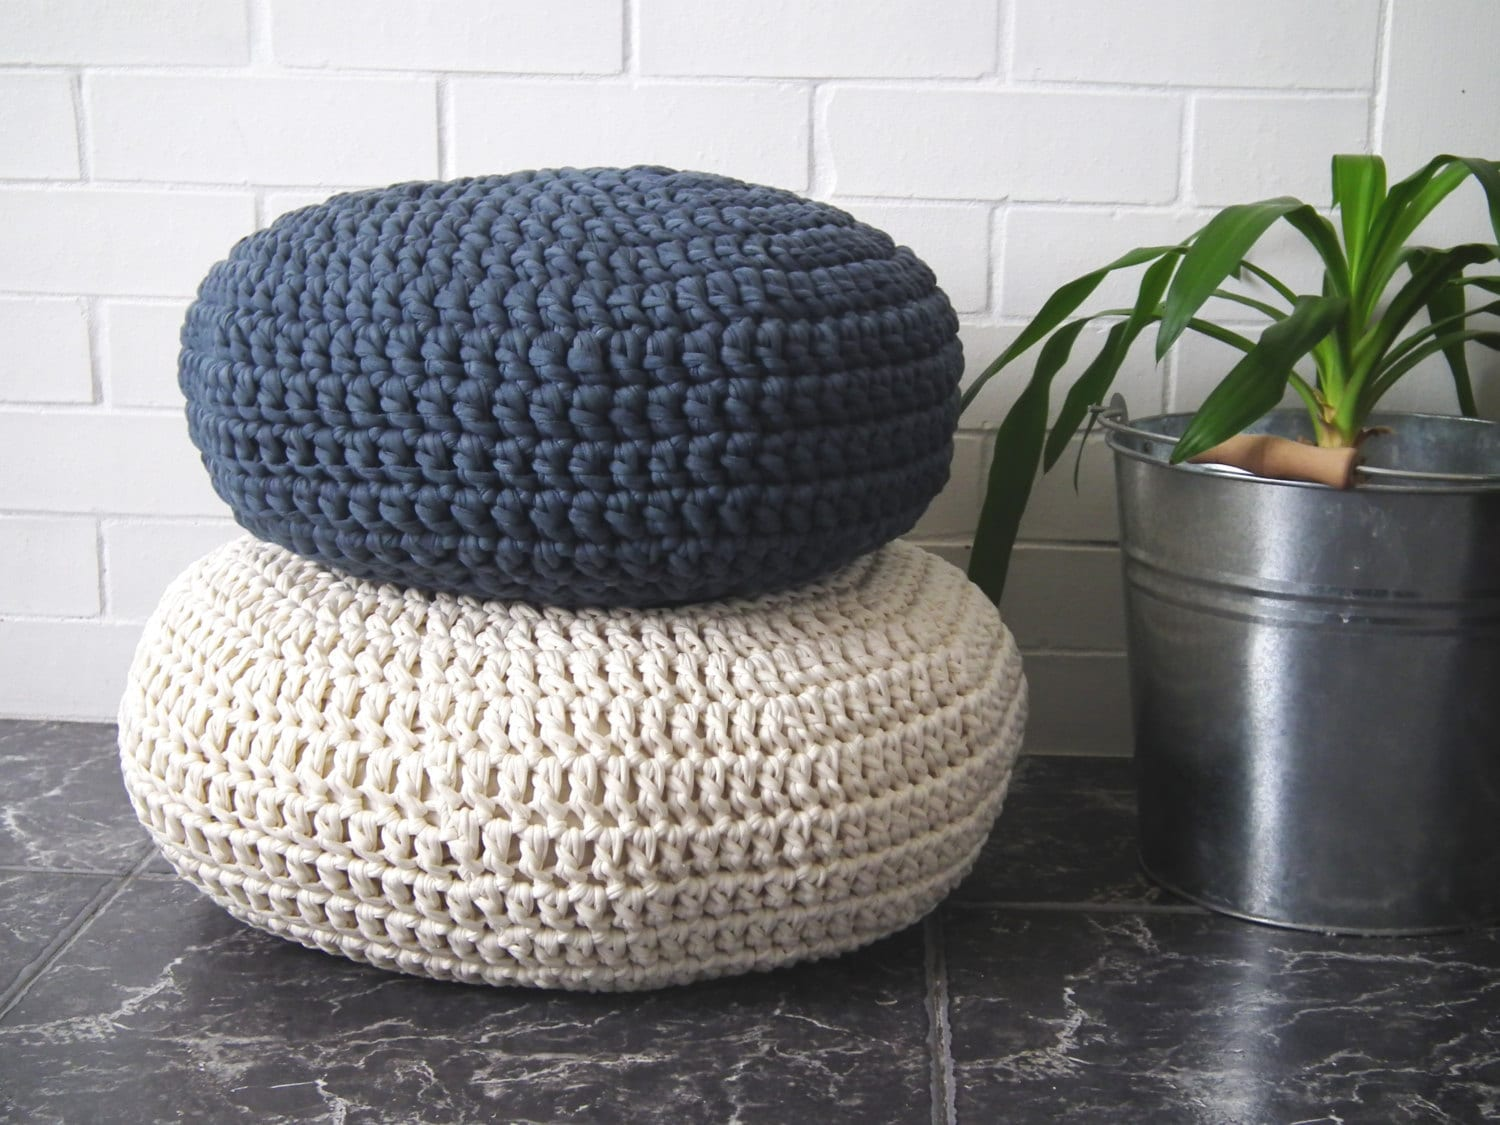 Crochet Floor Cushion-Meditation Floor Pillow-Stuffed Zafu